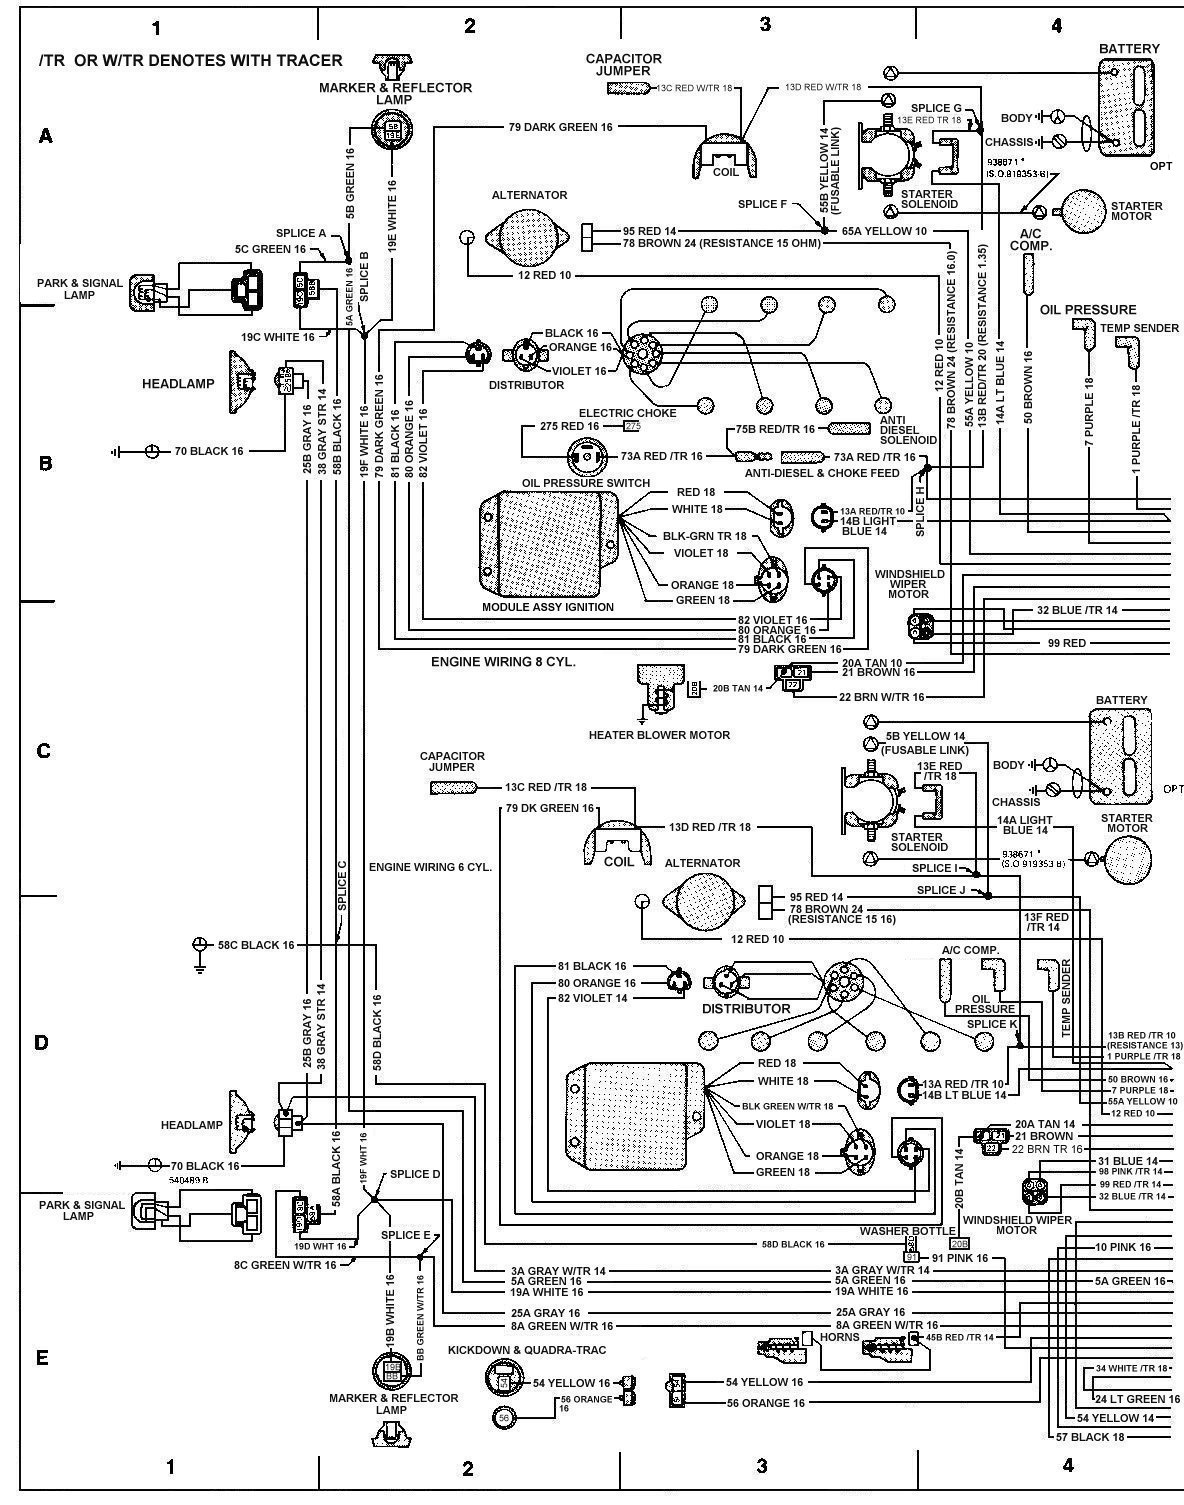 1979 corvette starter wiring diagram nissan x trail 81 chevy radio imageresizertool com